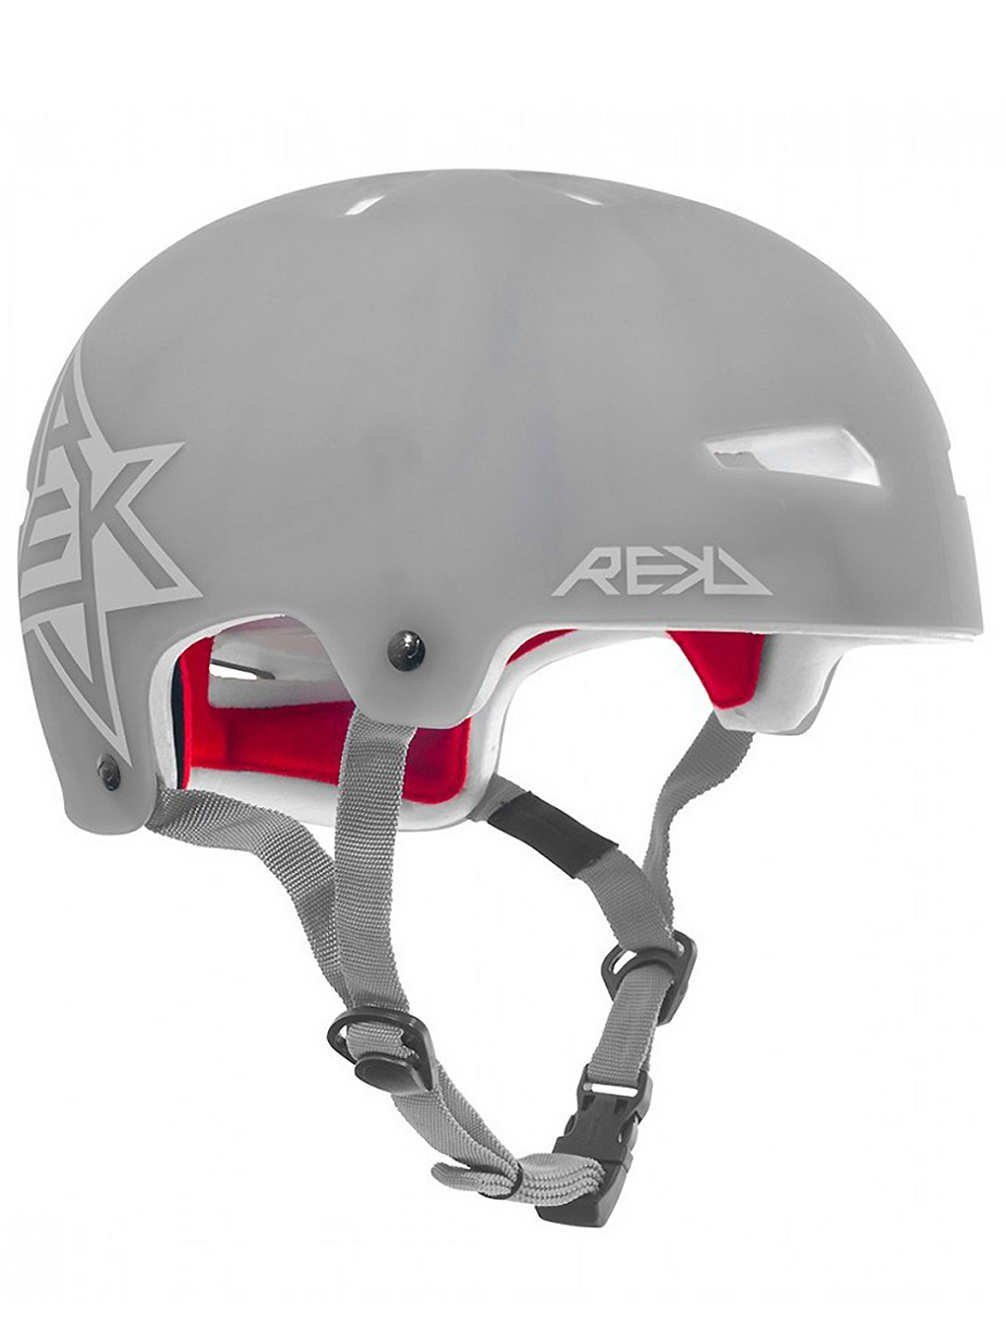 REKD Elite - halbtransparenter Helm - grau